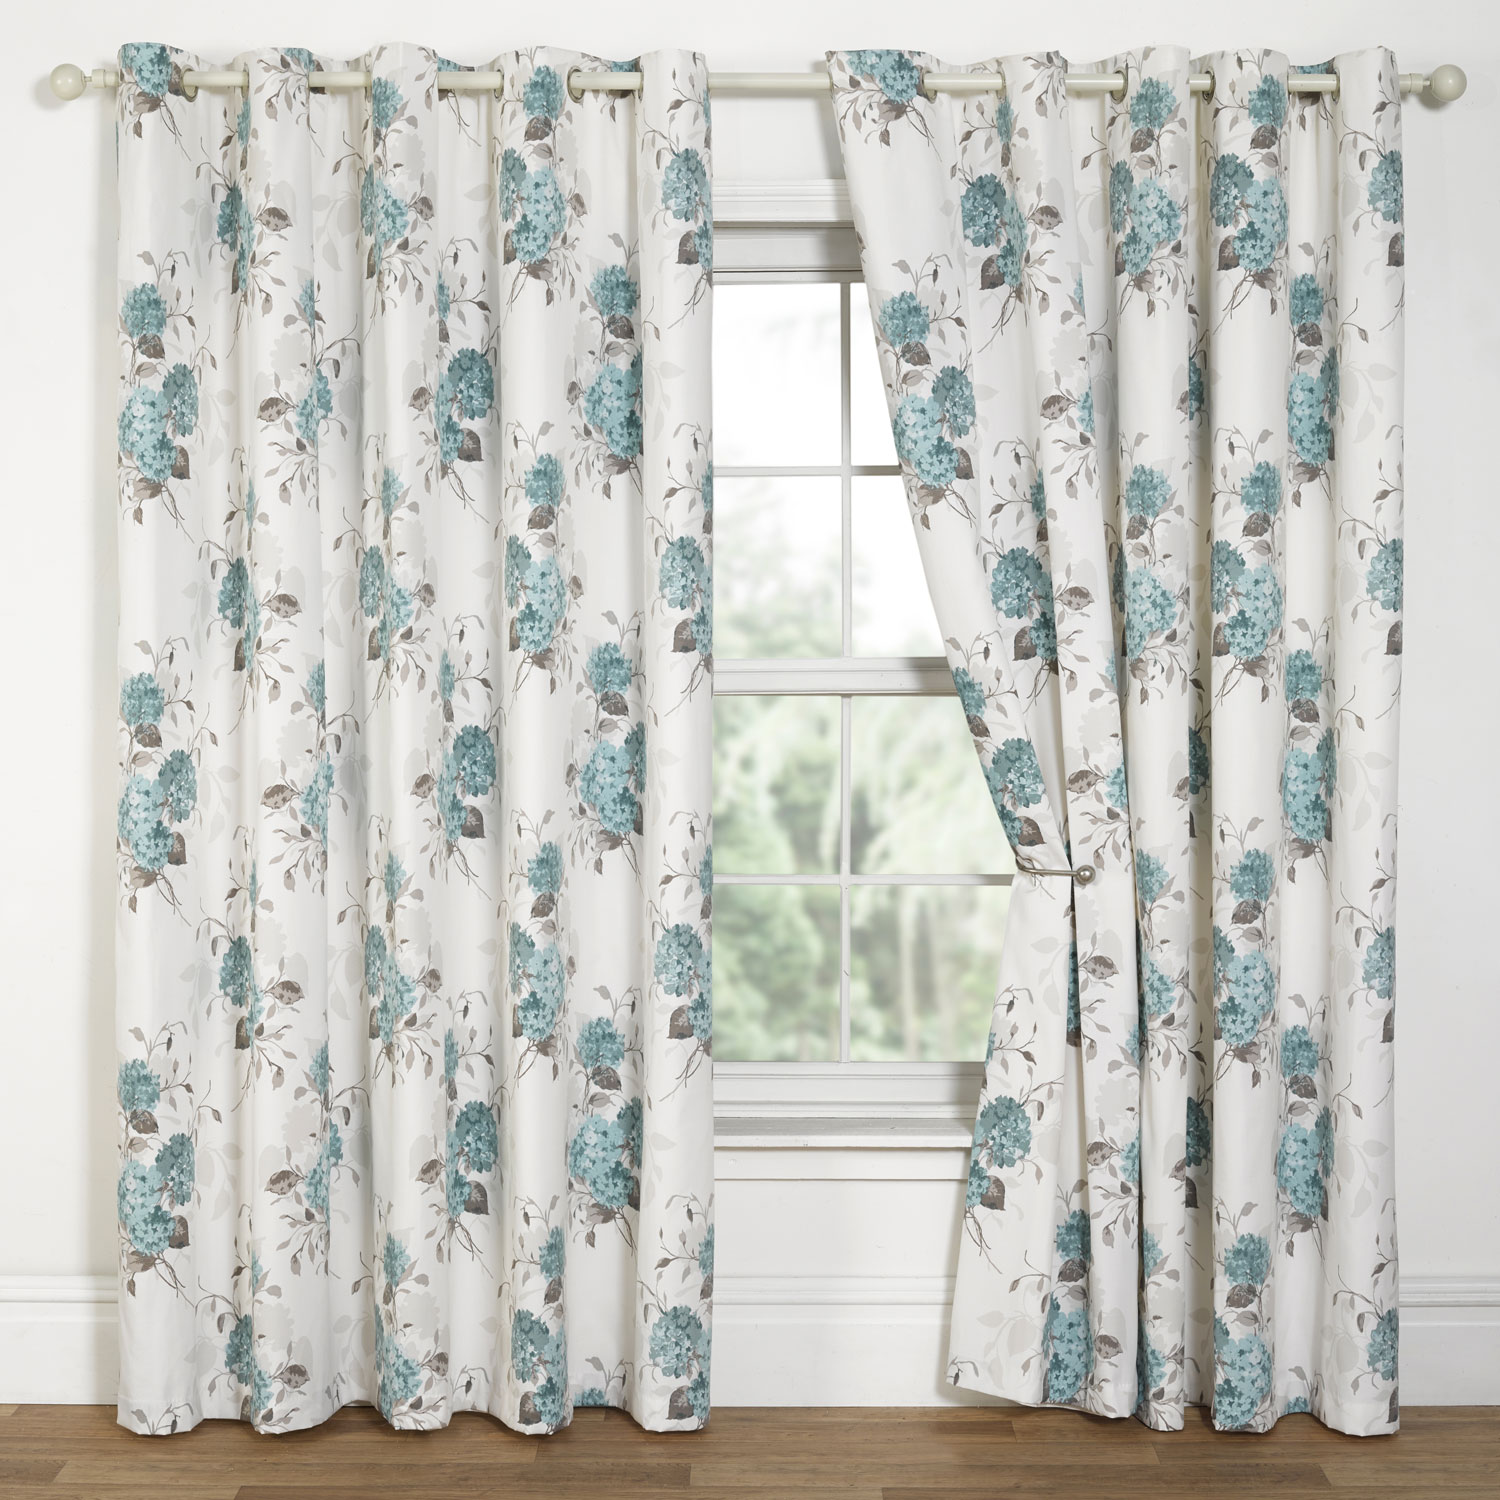 Superbe Duck Egg Blue White Patterned Curtains. White Patterned Curtains Homesfeed